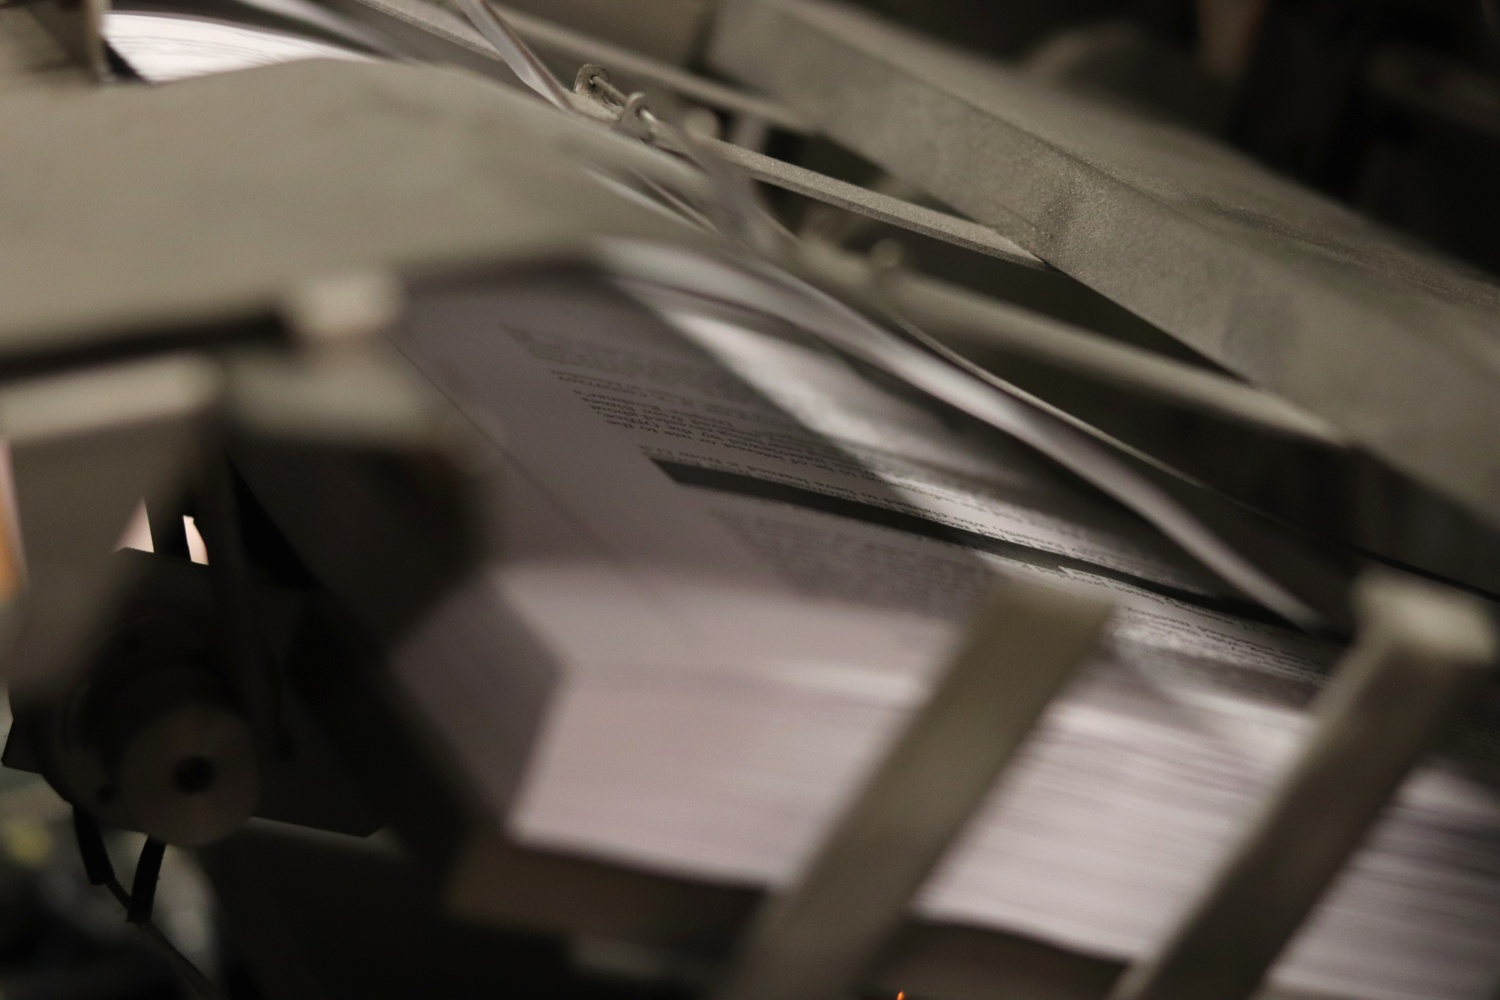 Printing the Mueller Report